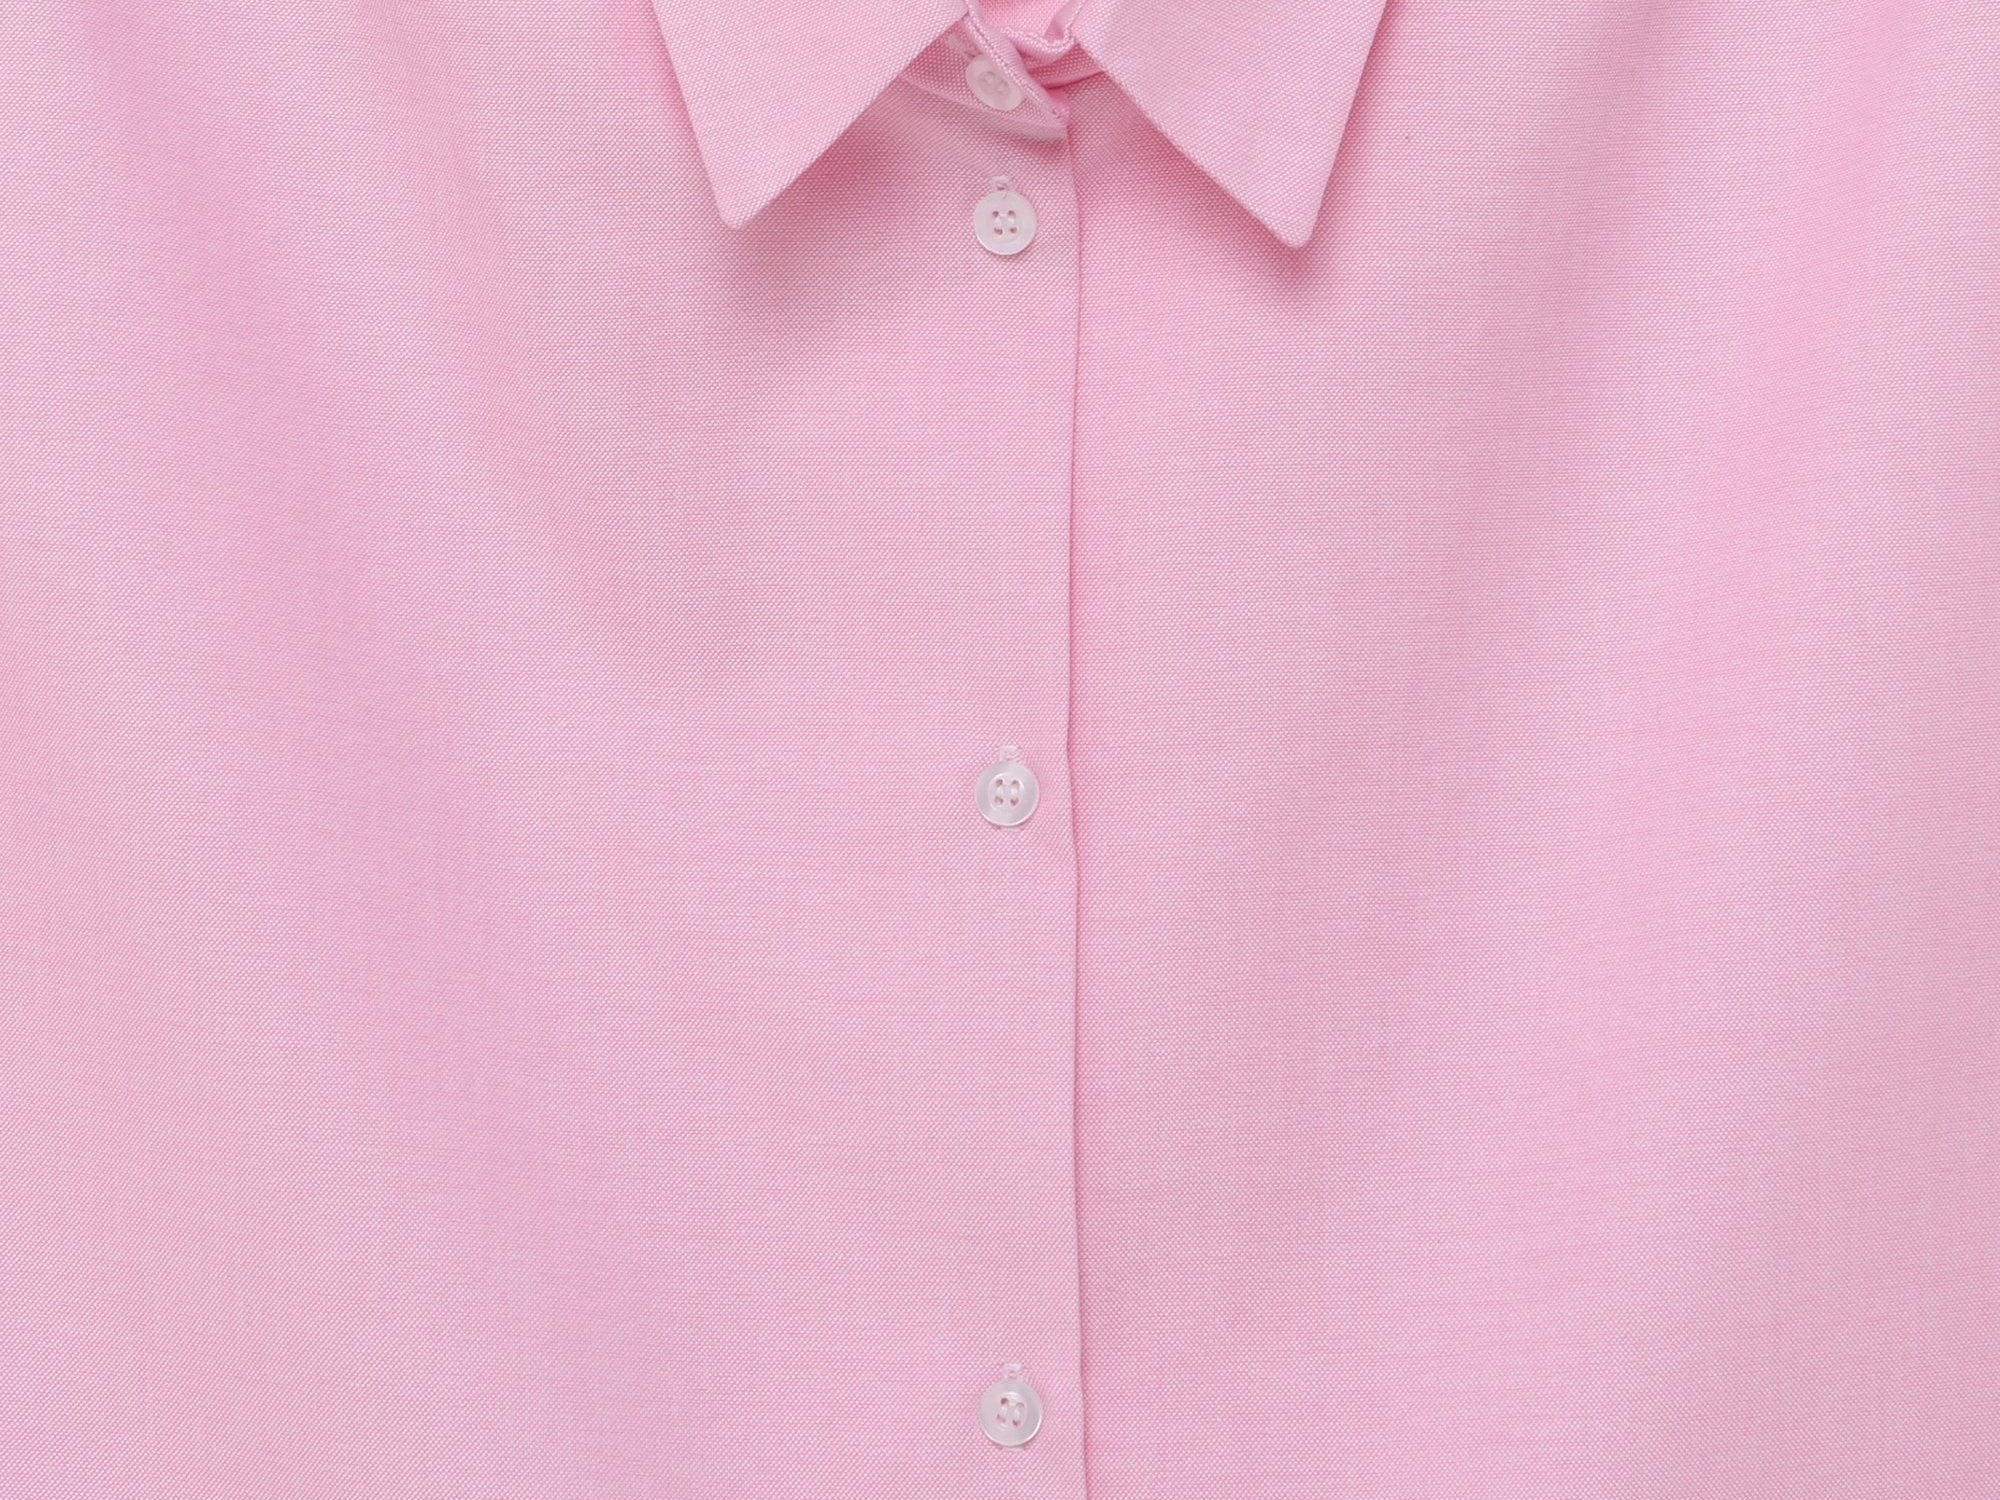 SOFT COTTON OVERSIZED SHIRT | SPRING PINK WITH PATCH POCKETS